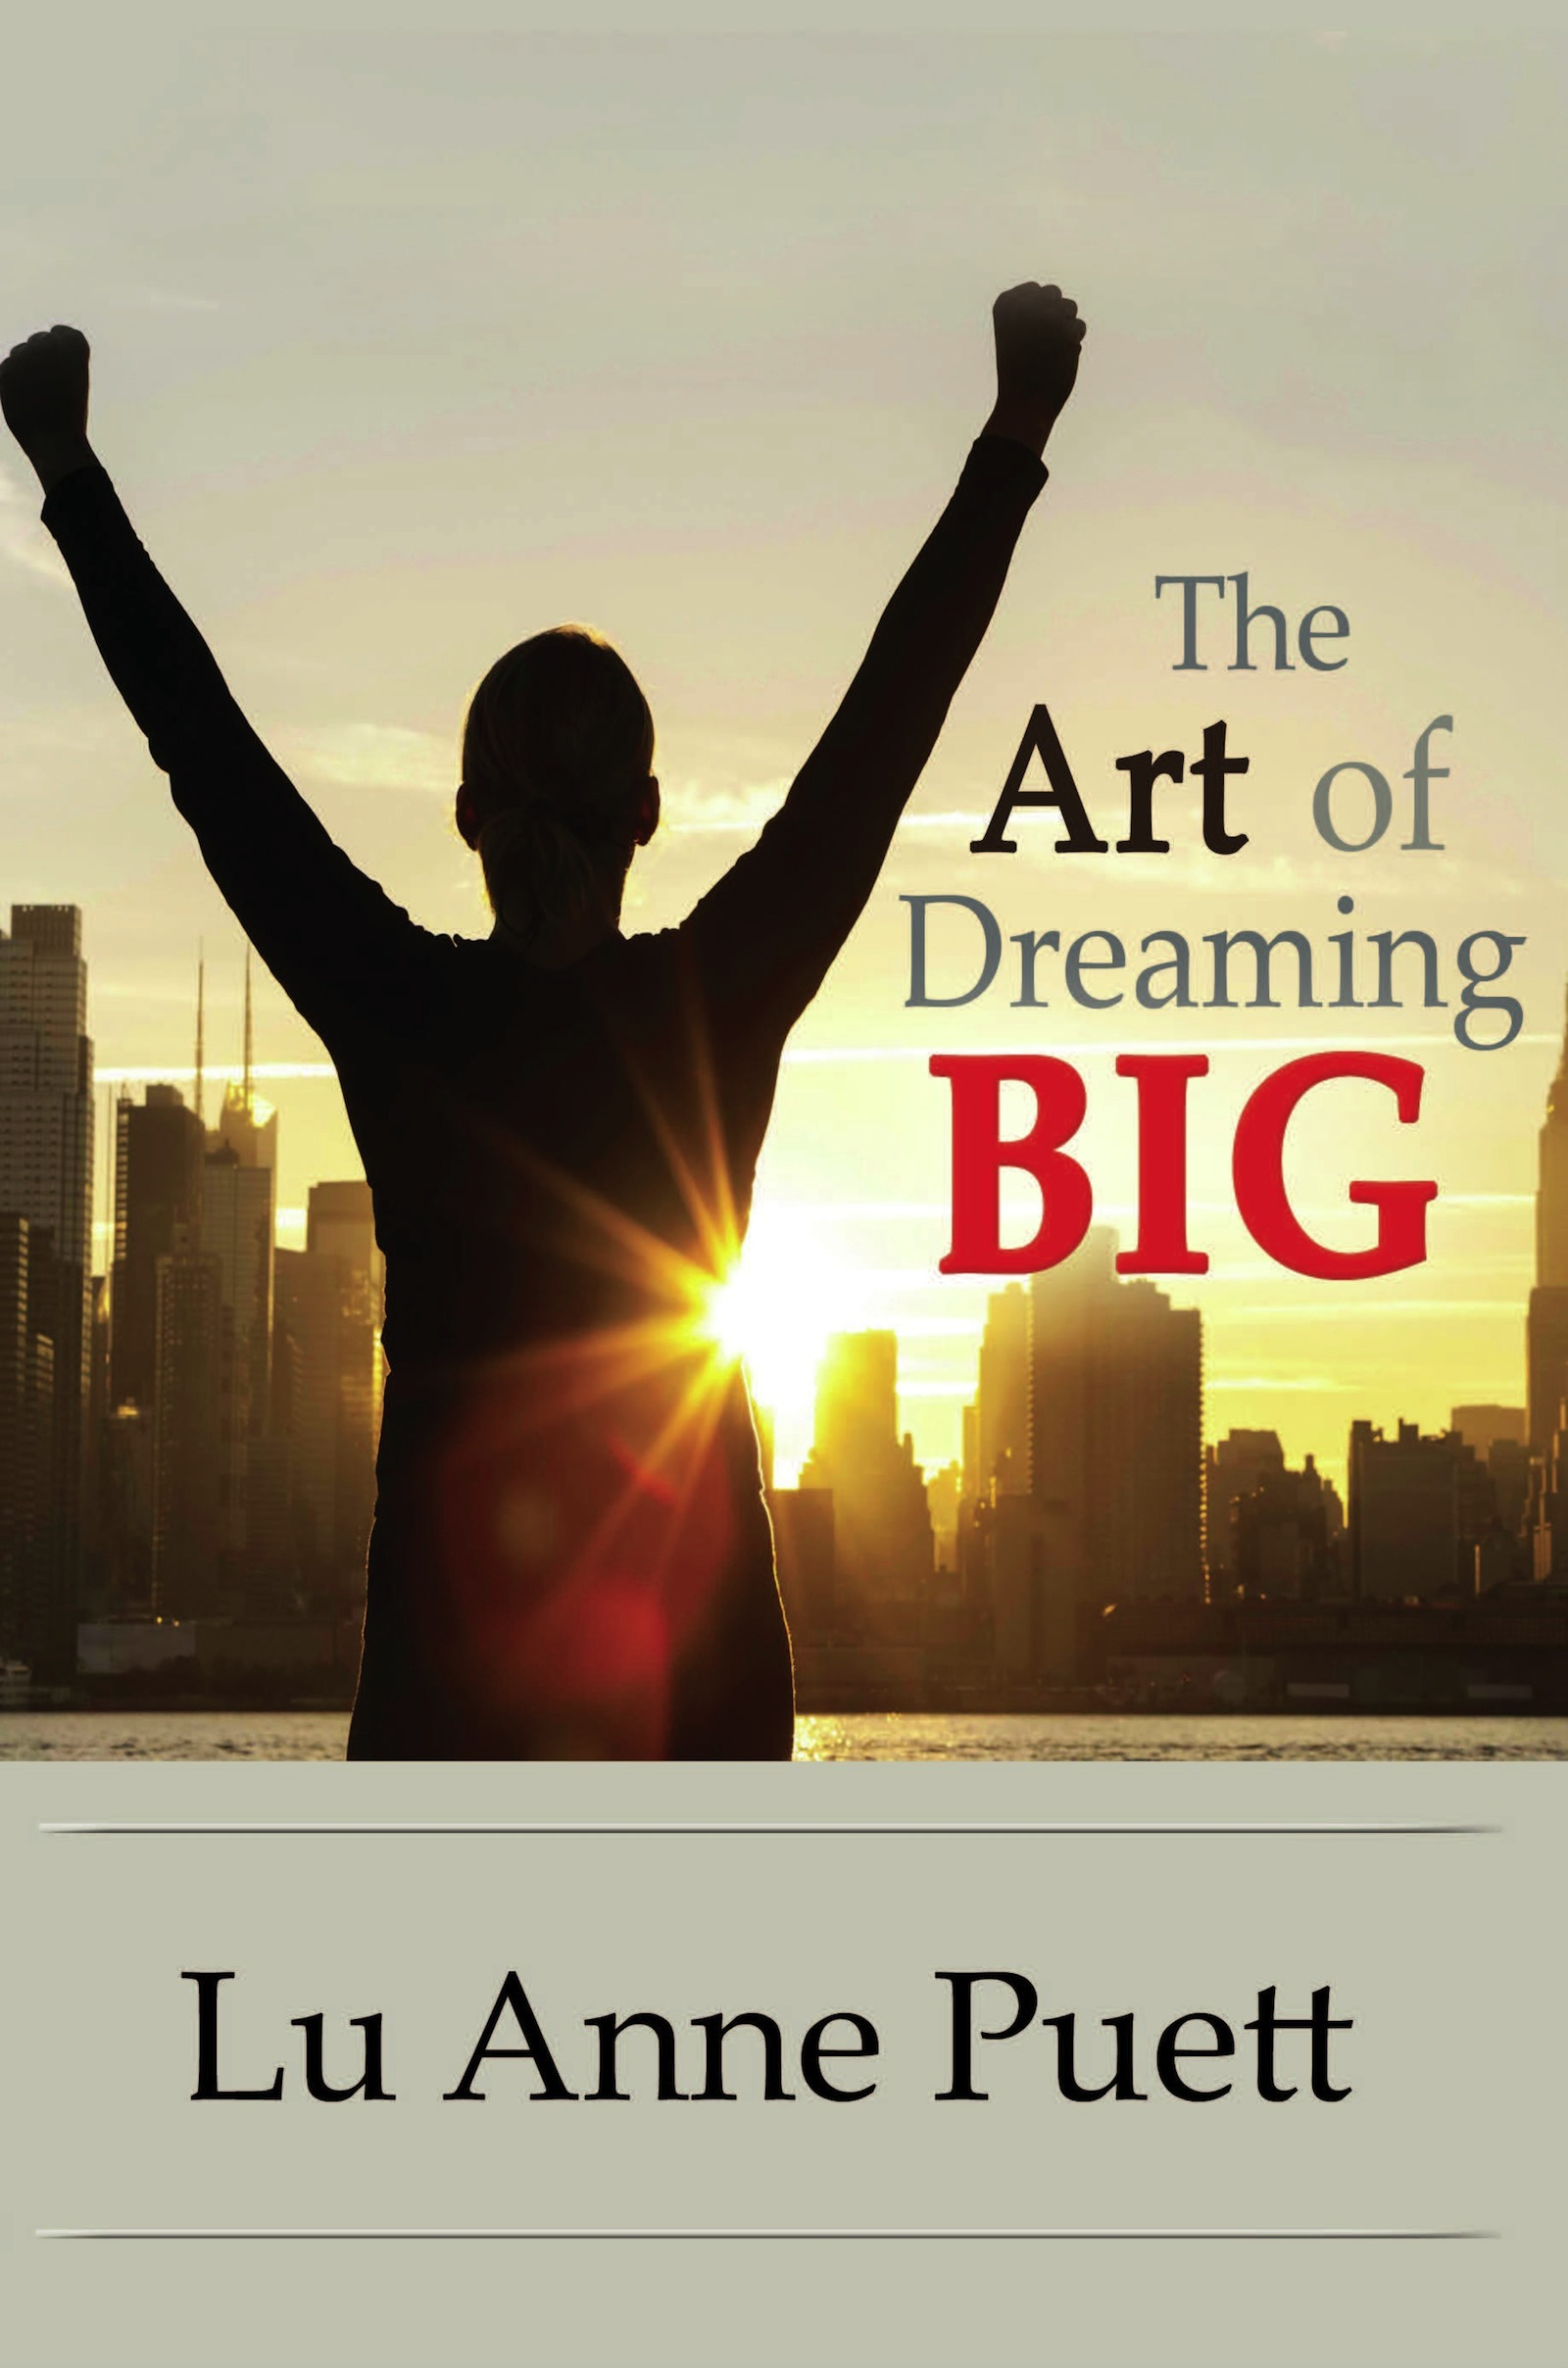 The Art of Dreaming Big